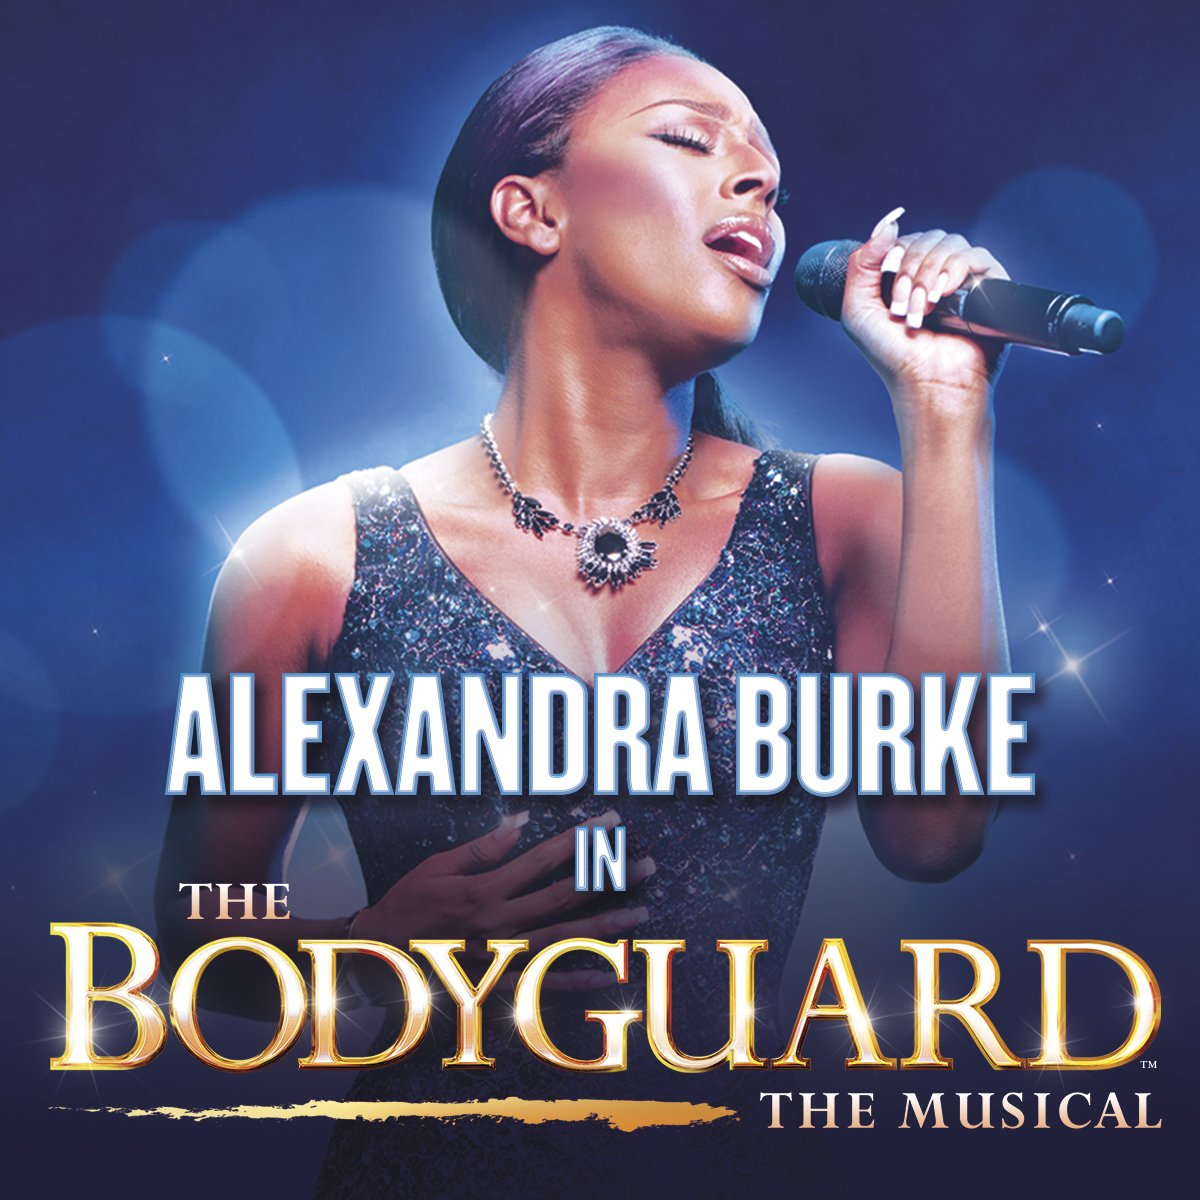 RT @LiverpoolEmpire: .@TheBodyguardUK opened last night & it's phenomenal! Don't miss out on the hottest ticket in Liverpool - ends 7 May h…